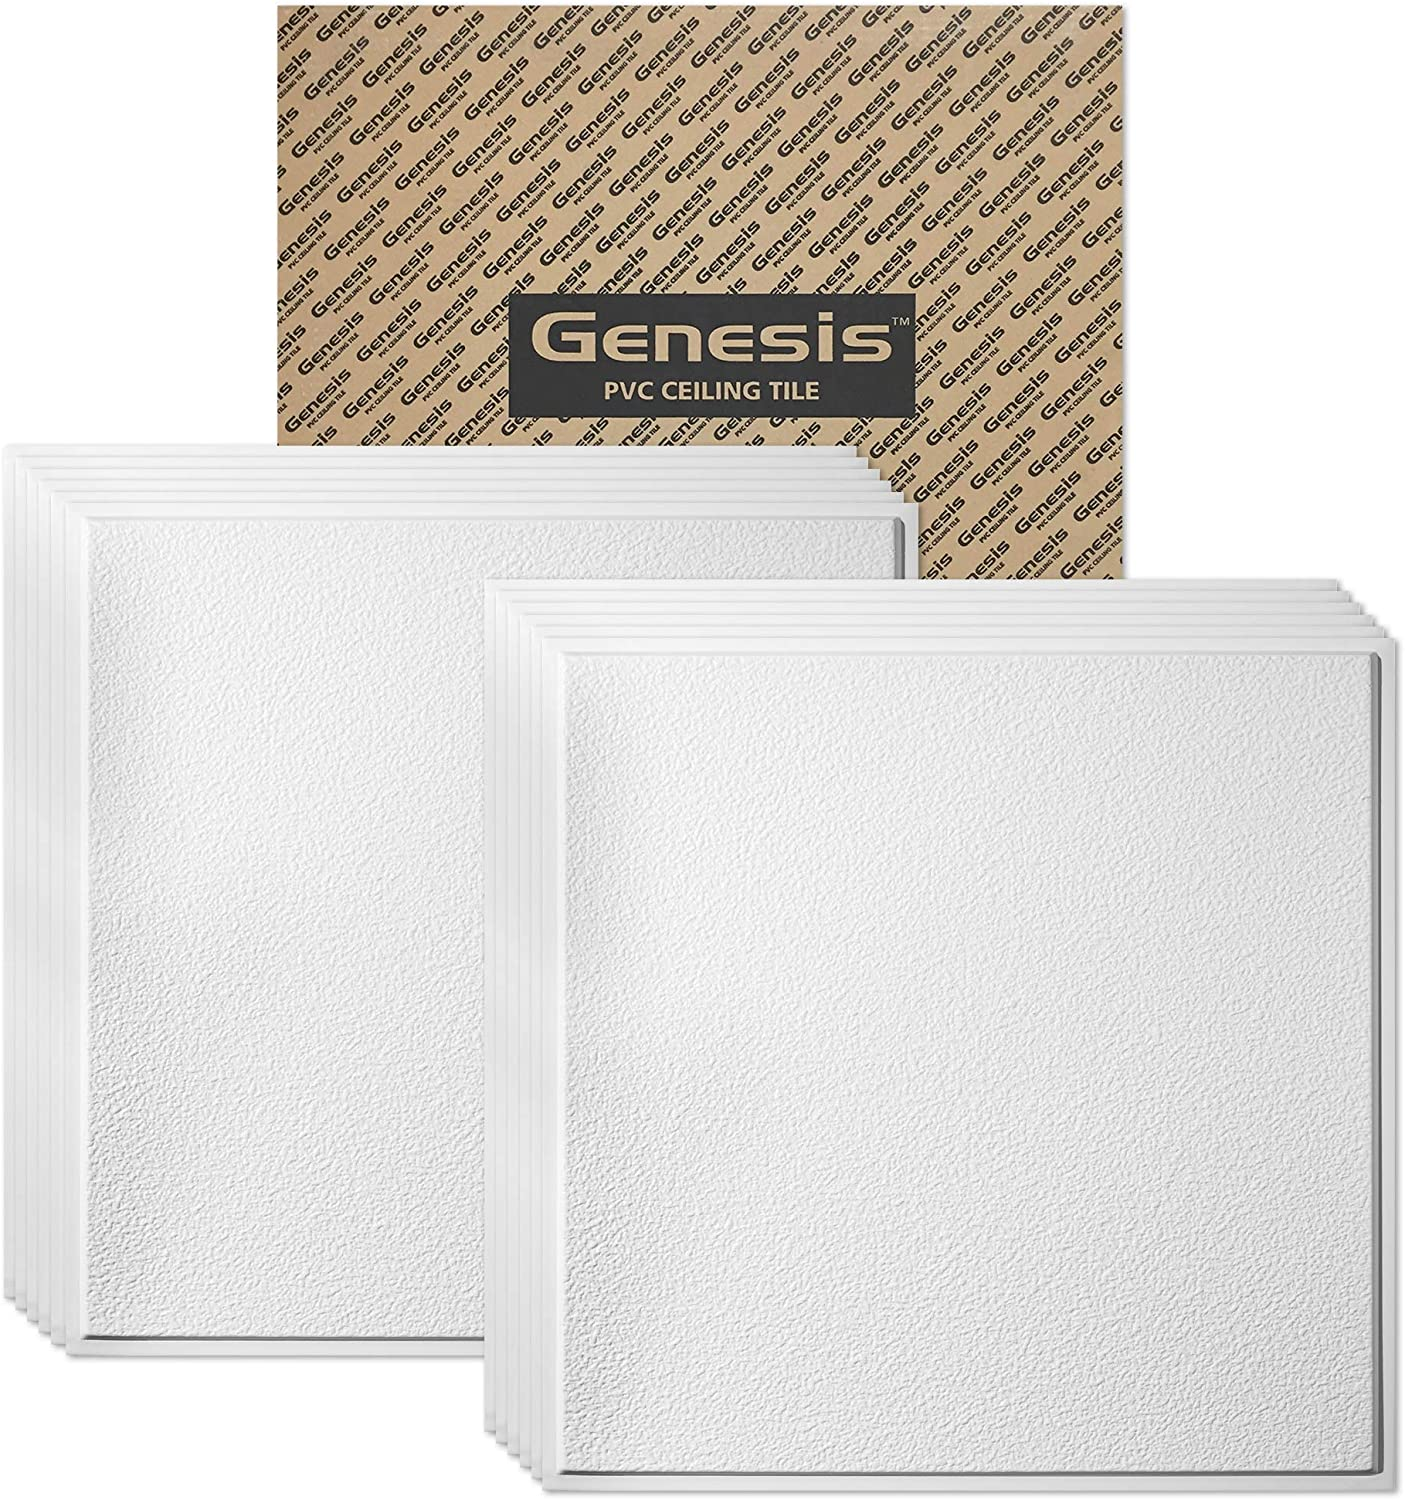 Genesis 2ft x 2ft White Stucco Pro Revealed Edge Ceiling Tiles - Easy Drop-in Installation – Waterproof, Washable and Fire-Rated - High-Grade PVC to Prevent Breakage - Package of 12 Tiles